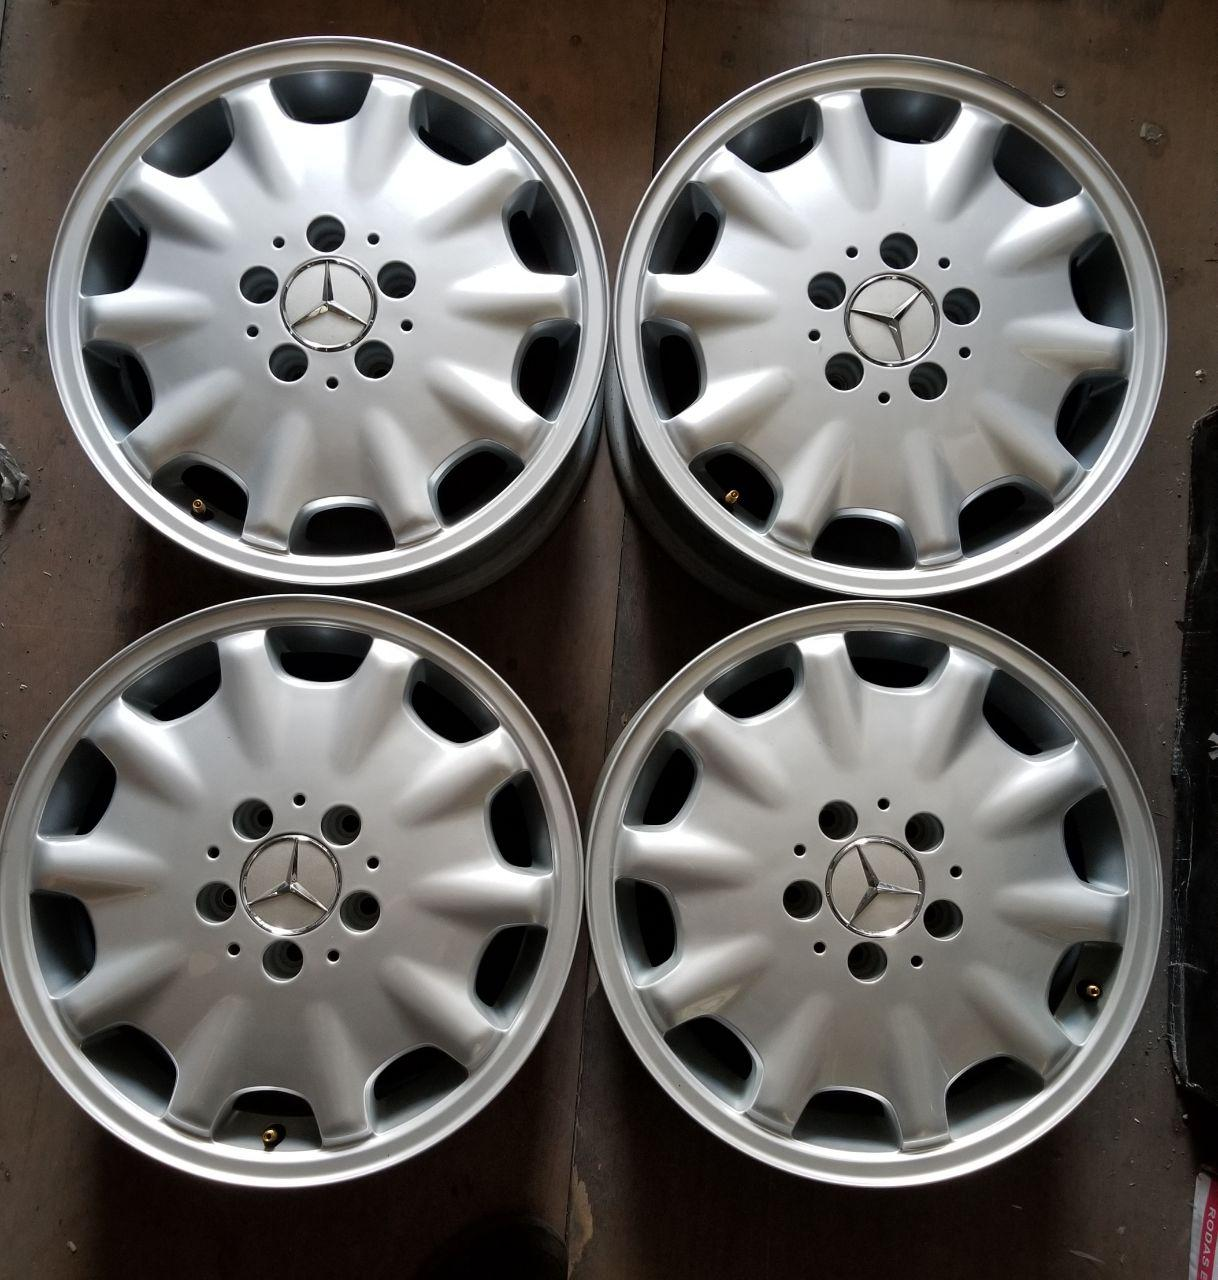 - OEM WHEELS - 1995-1999 MERCEDES E-CLASS 16x7.5 10 HOLE Hollander #65168 /  USED